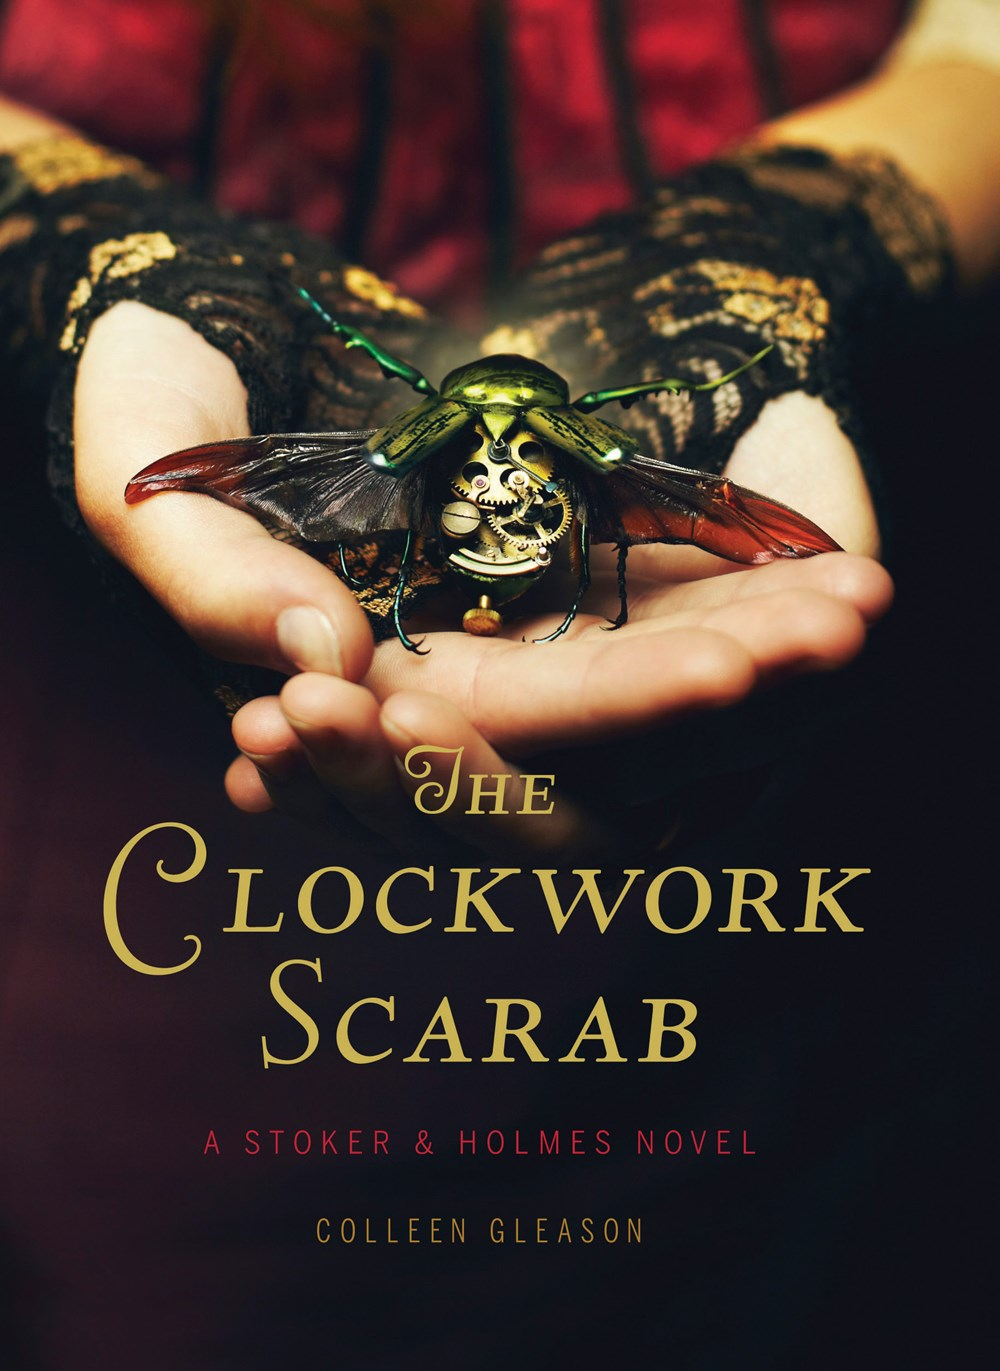 Image result for the clockwork scarab book cover